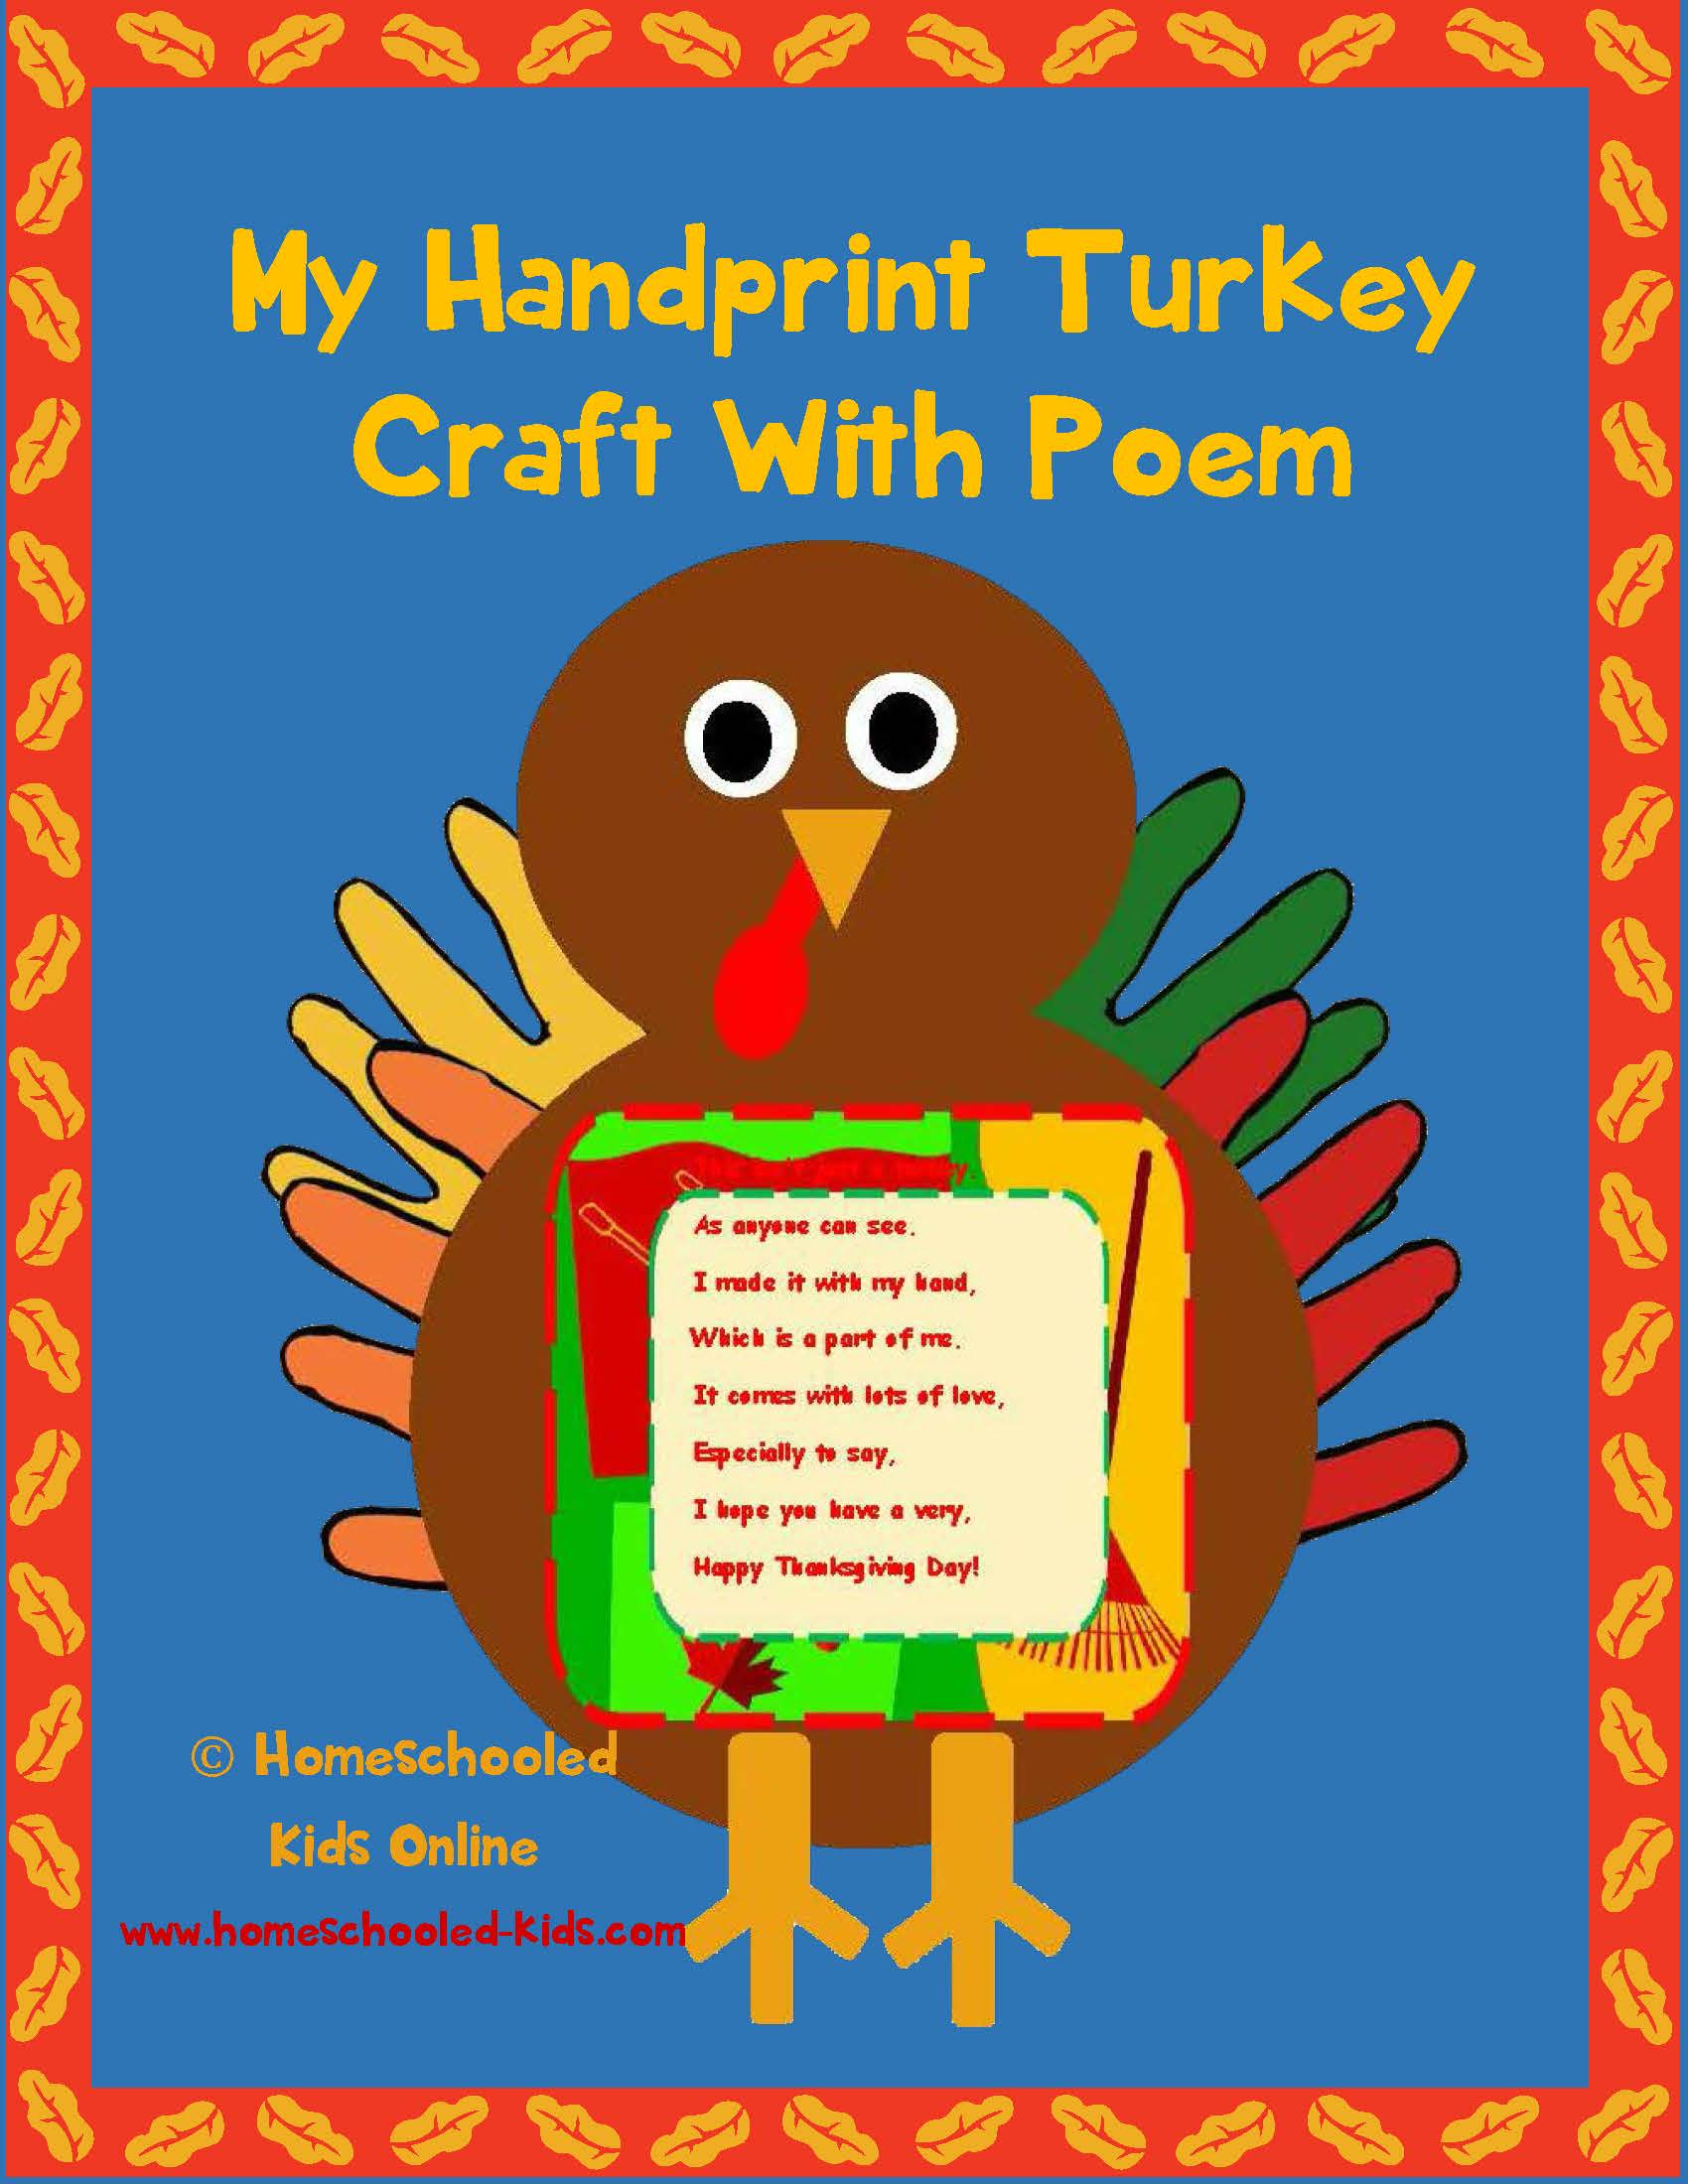 Magazine For Homeschooled Kids Hand Print Turkey Craft With Poem